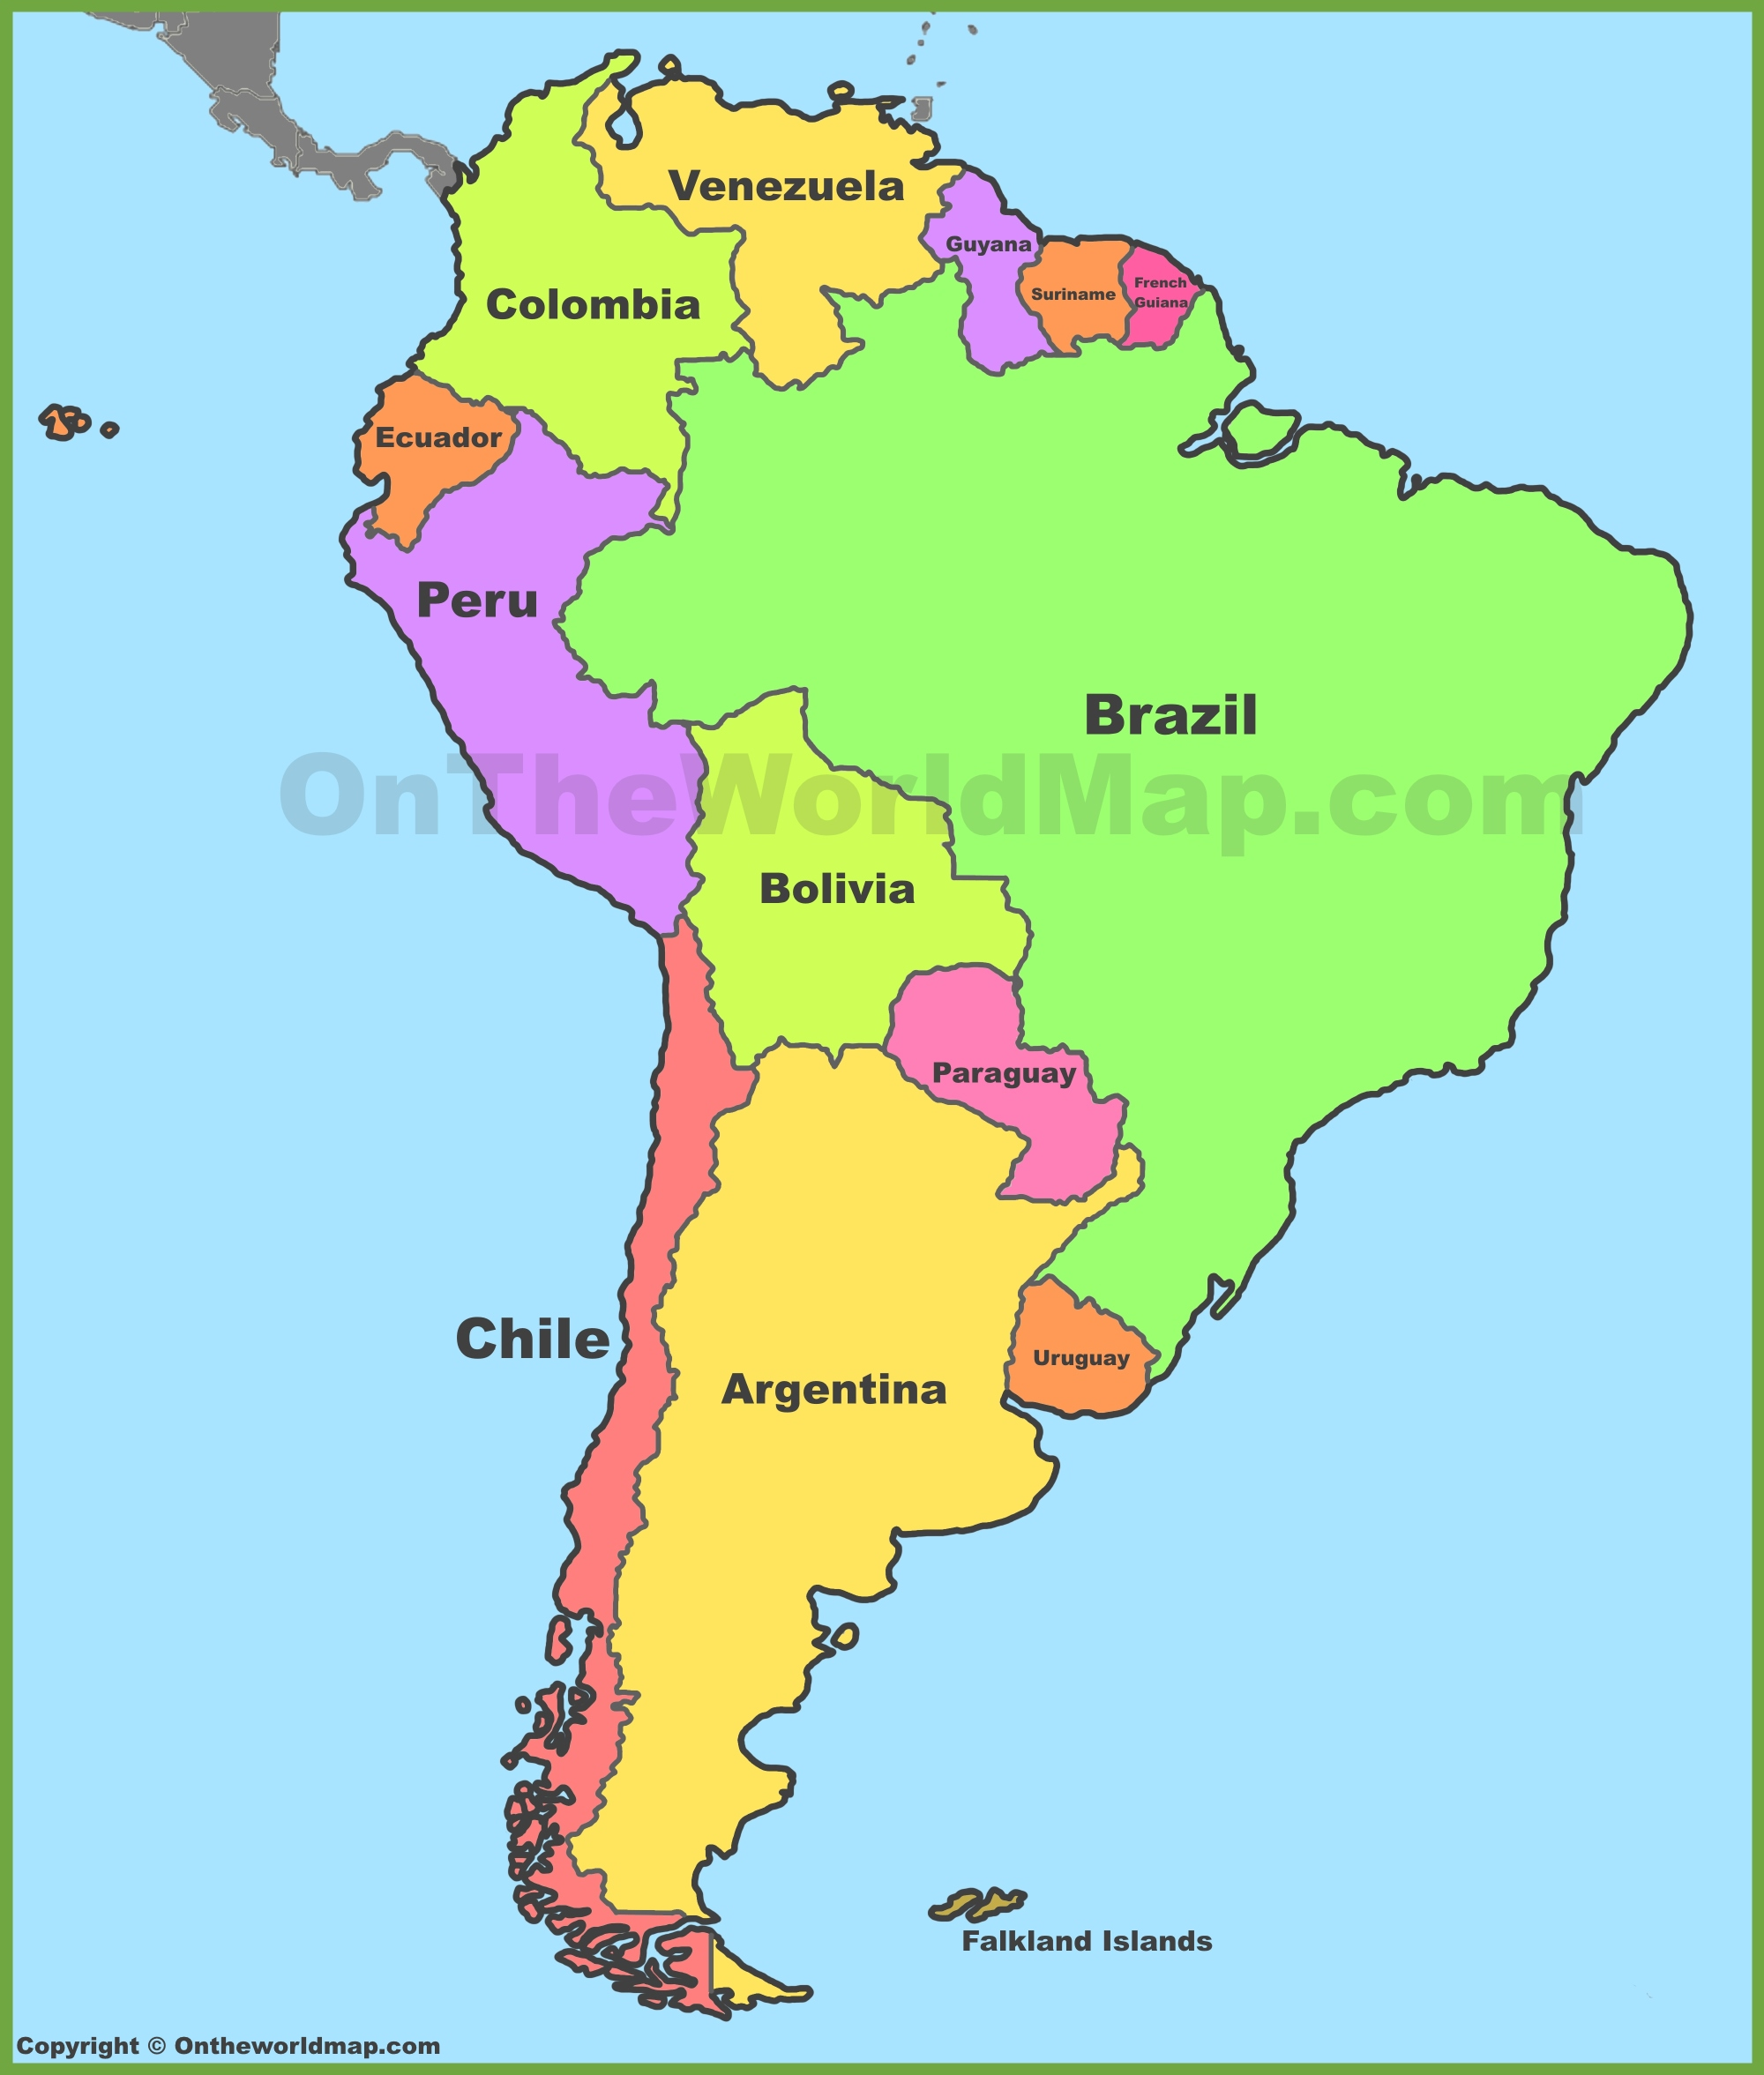 A Map Of South America South America Maps | Maps of South America   OnTheWorldMap.com